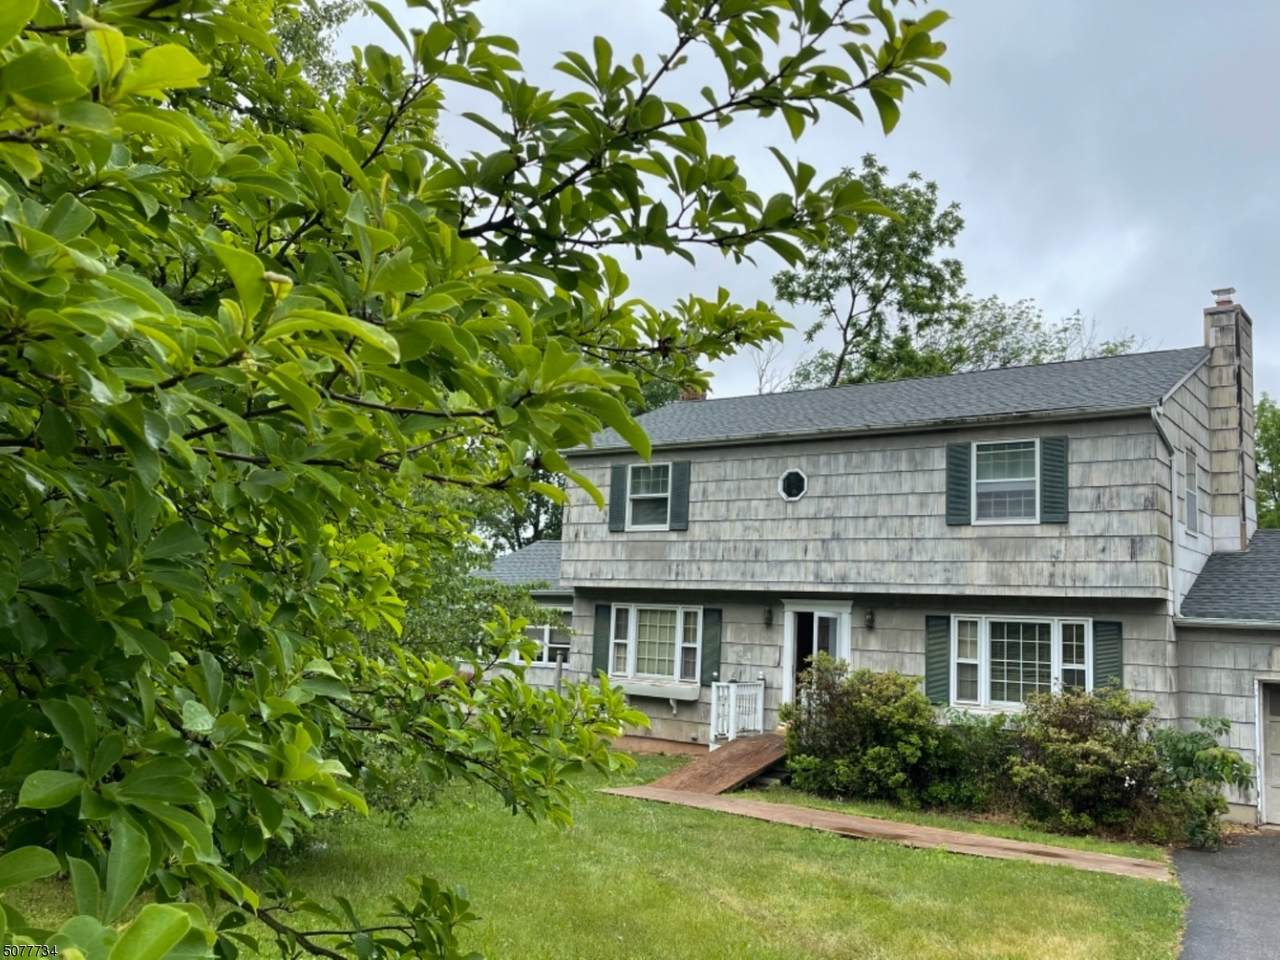 46 Everitts Rd - Photo 1